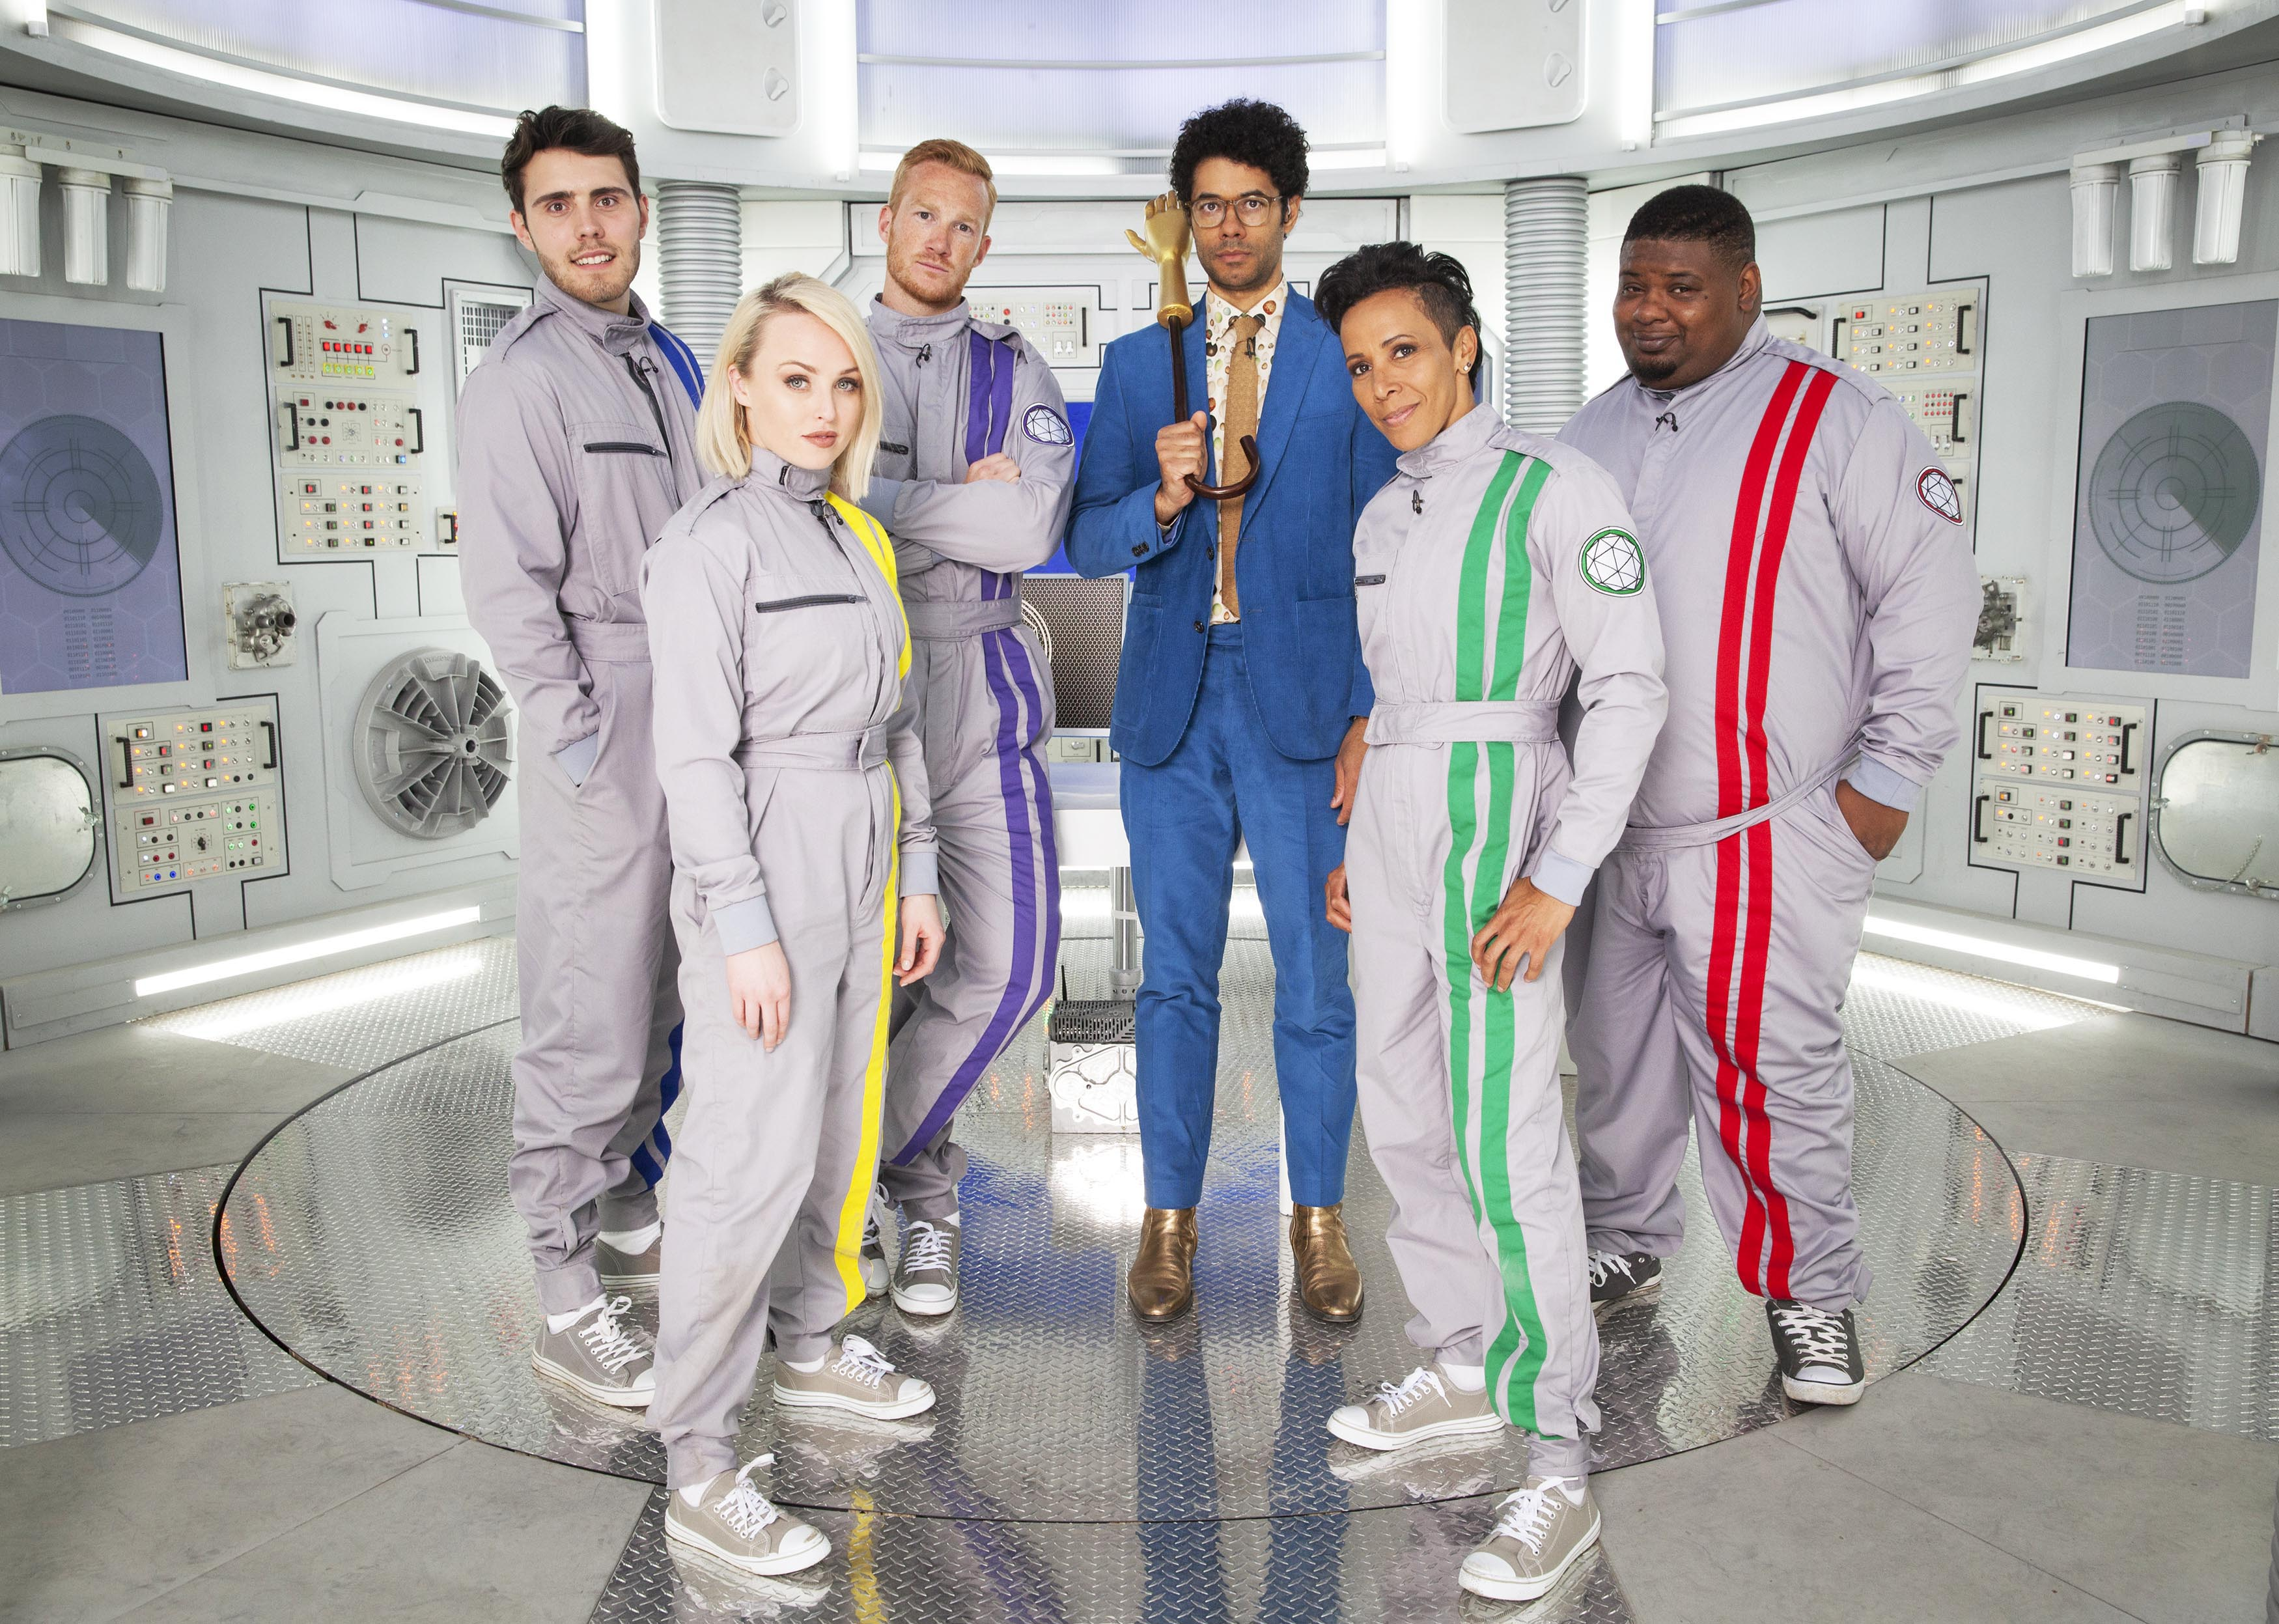 The Crystal Maze: Celebrity Episode 1 - Dame Kelly Holmes, MC Big Narstie, actress Jorgie Porter, internet superstar Alfie Deyes and long jumper Greg Rutherford Image - CHANNEL 4